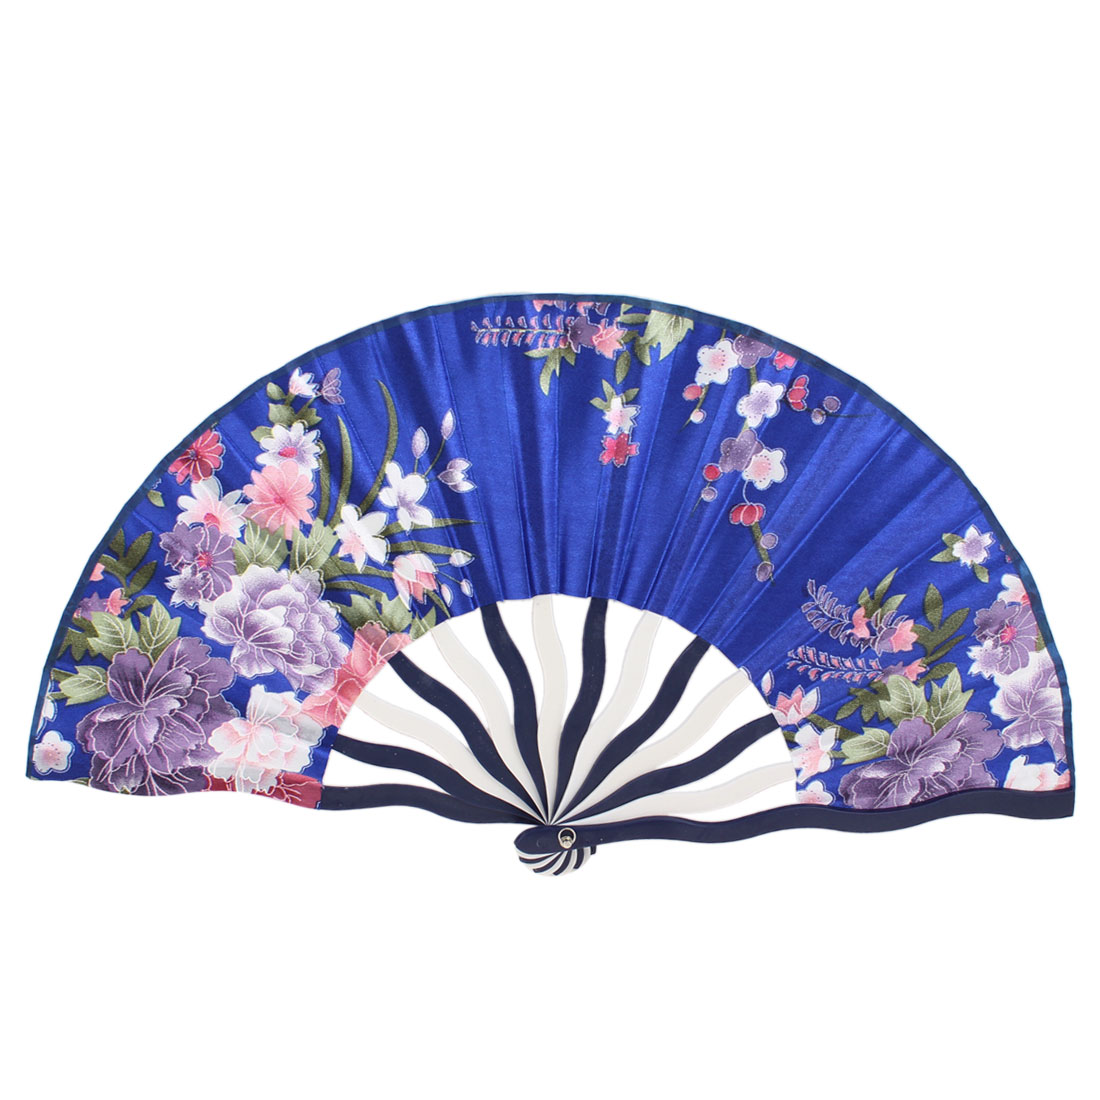 Lifelike Tricolor Flower Printed Wooden Chinese Hand Fan